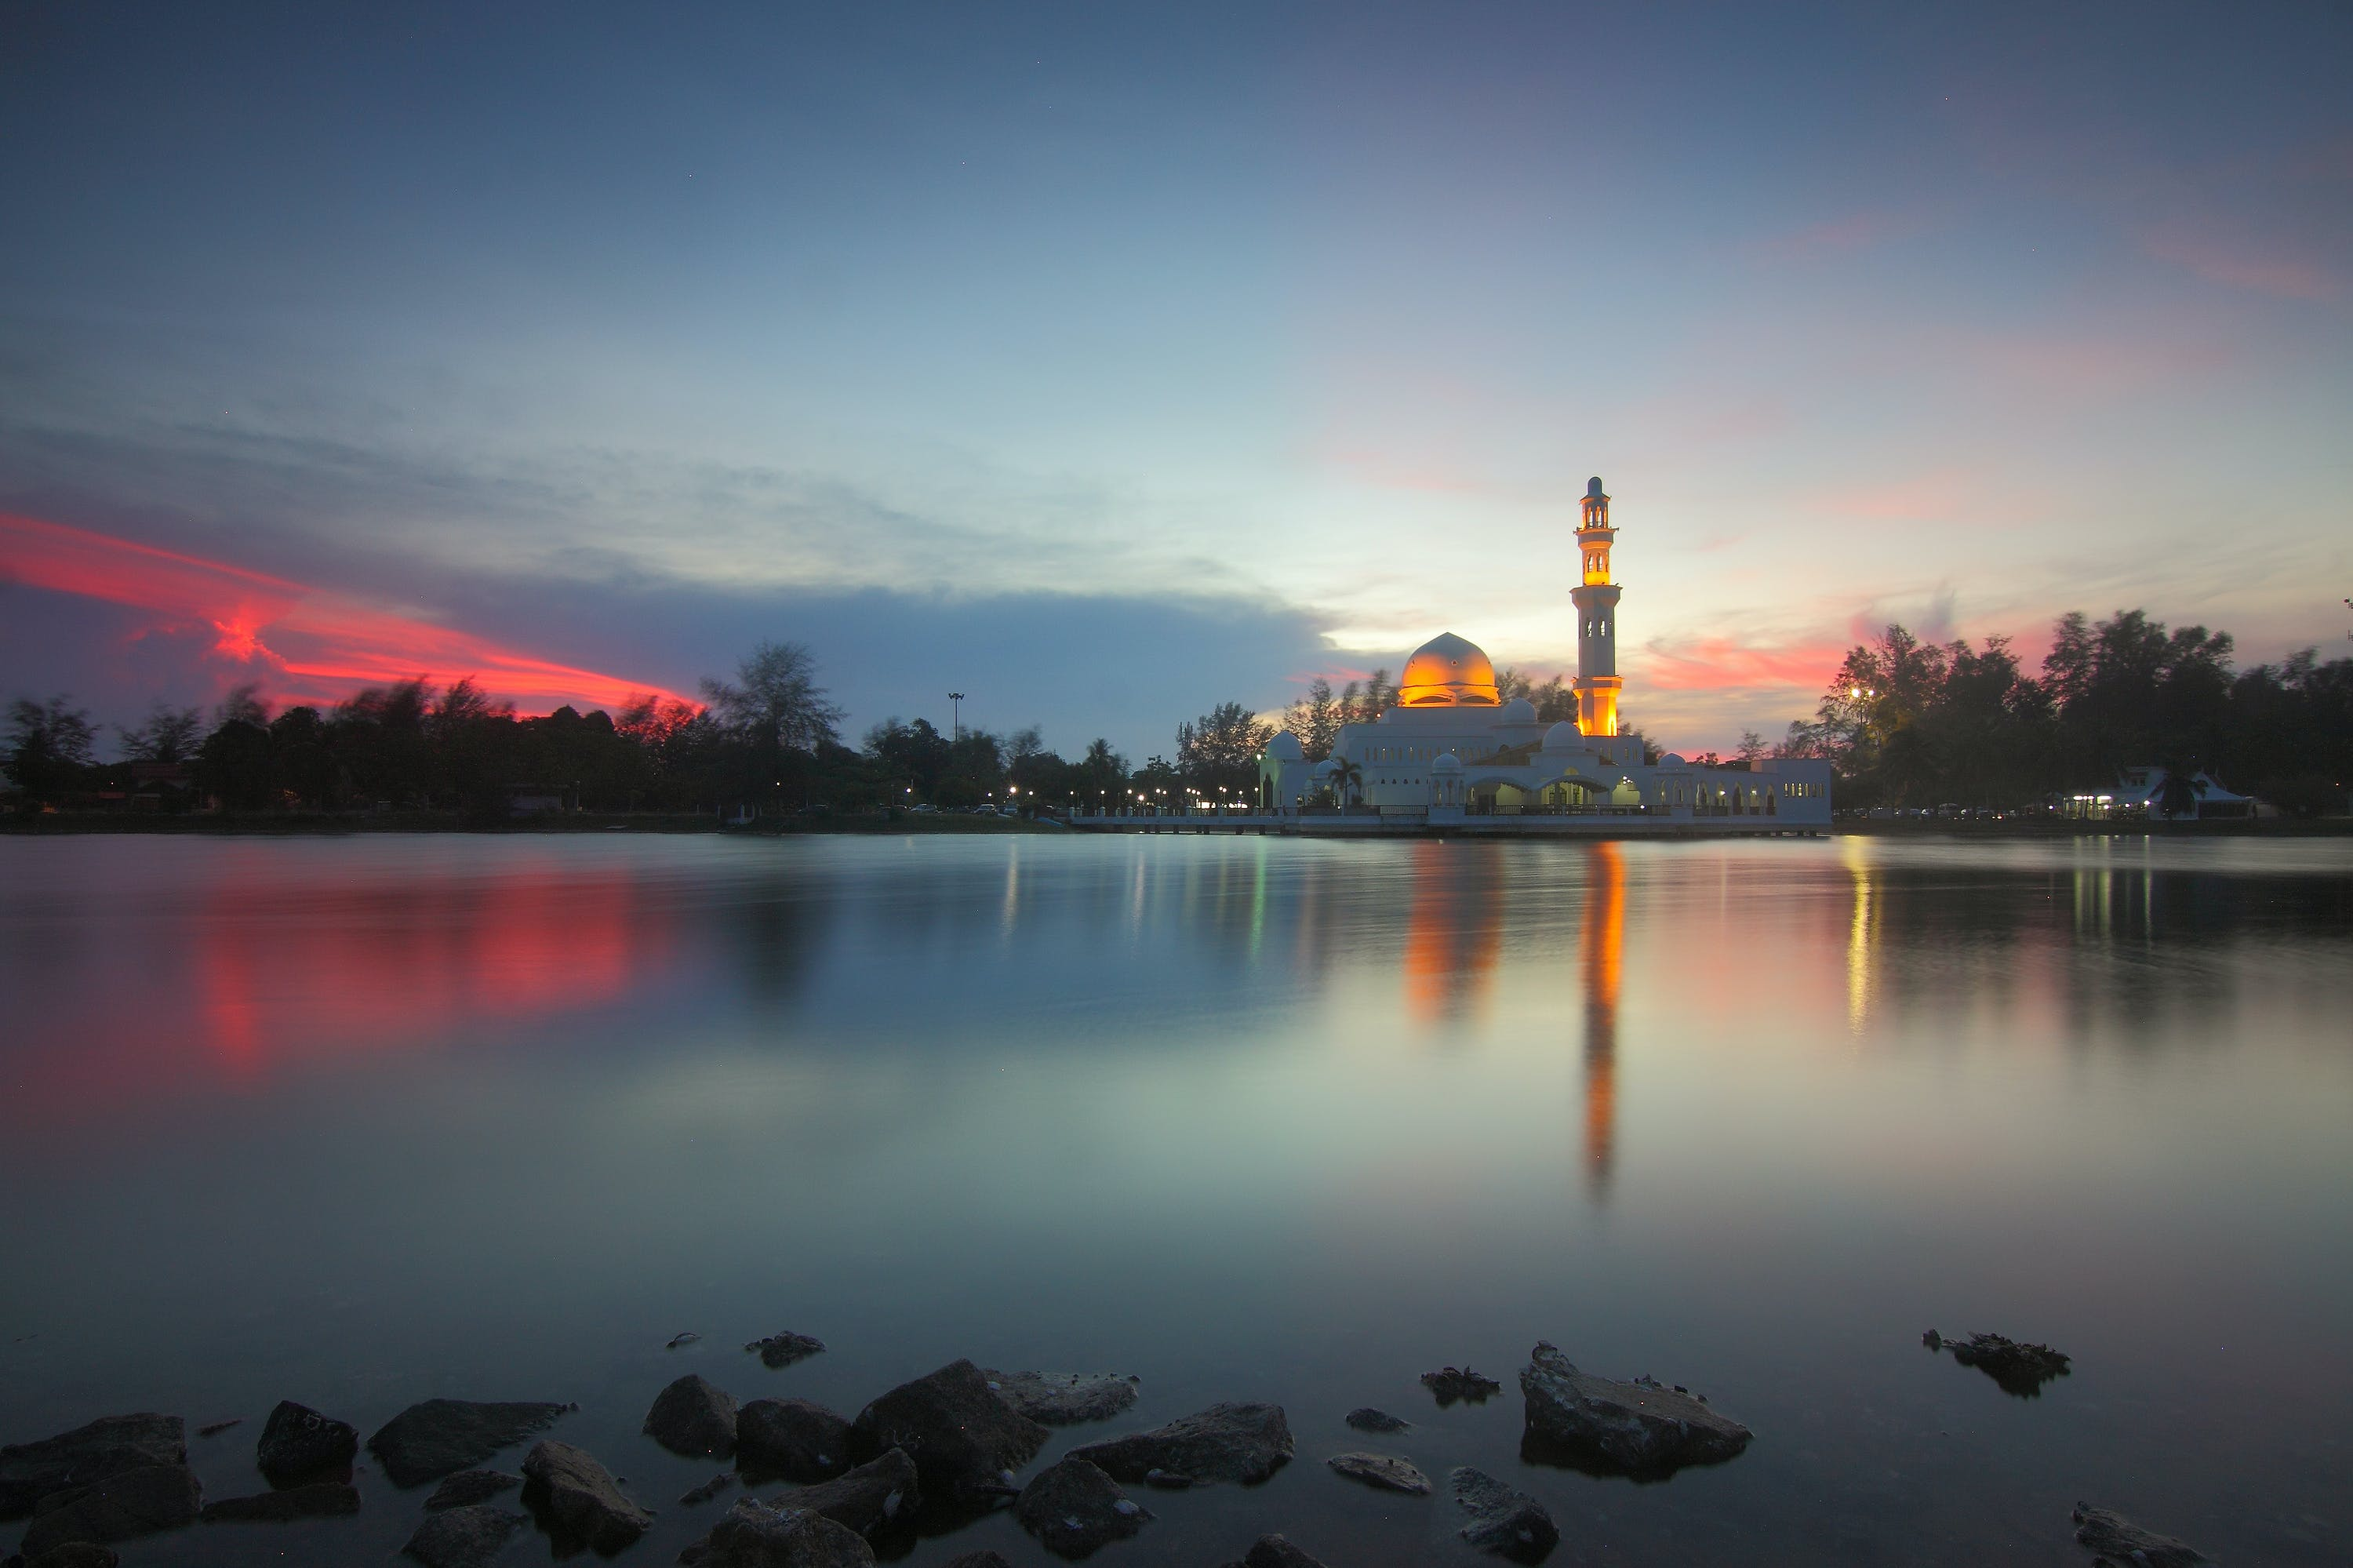 Mosque Near Body of Water during Golden Hour